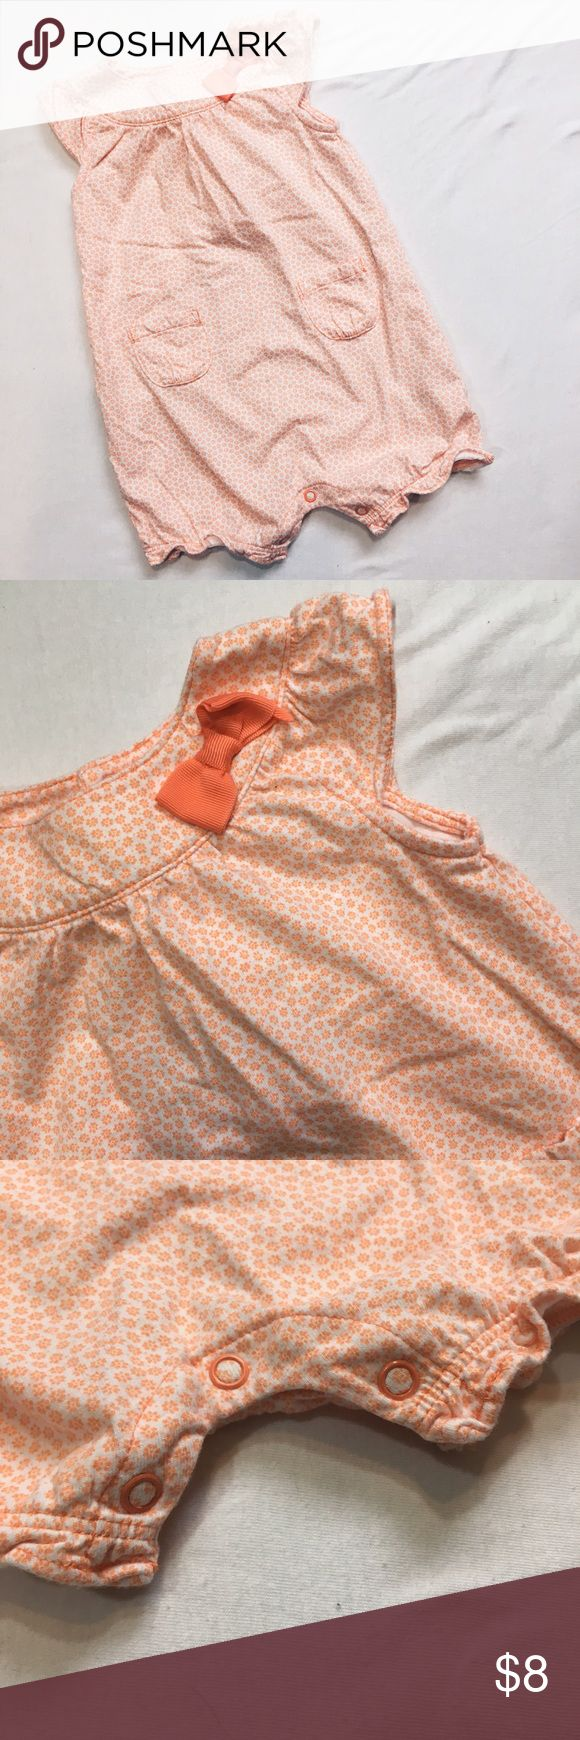 ⭐️ Orange / Peach Shorts Romper Shorts Romper with snaps at the bottom for easy diaper changes. Worn maybe once, excellent condition. Perfect for summer Carter's Bottoms Jumpsuits & Rompers